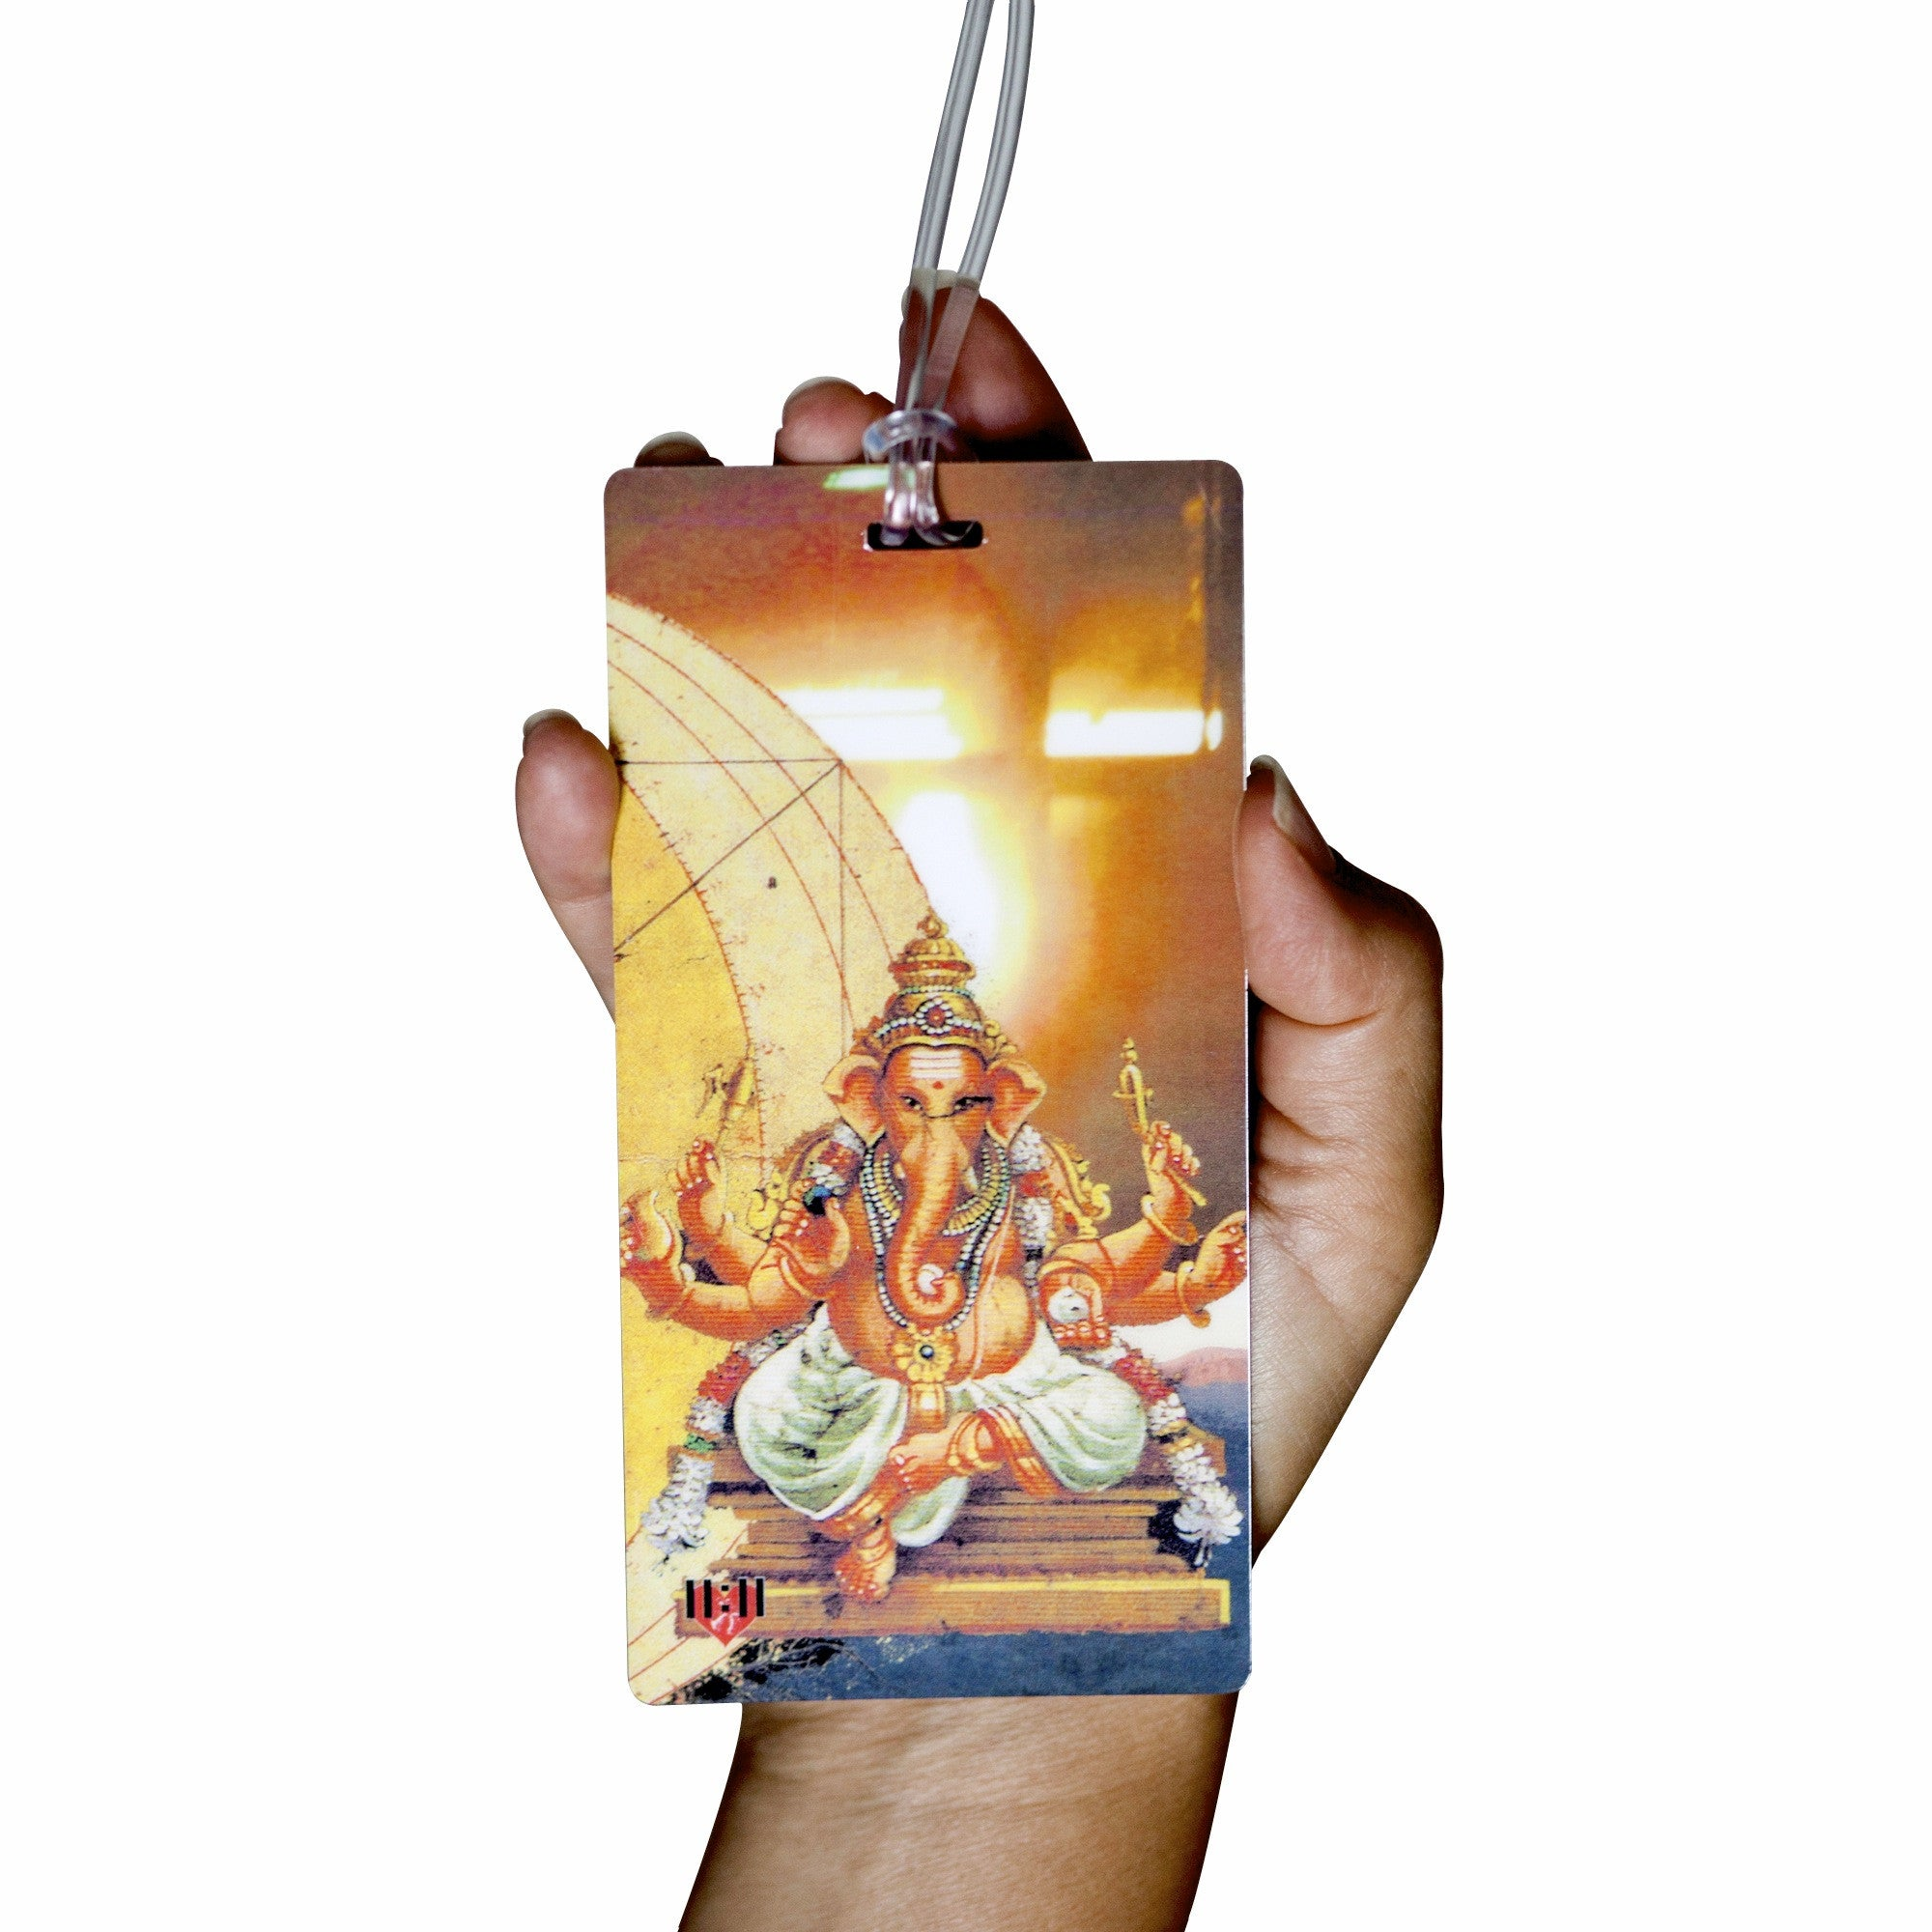 Ganesha: Remover of Obstacles Luggage Bag Tag Set - 2 pc, Large by 11:11 Enterprises